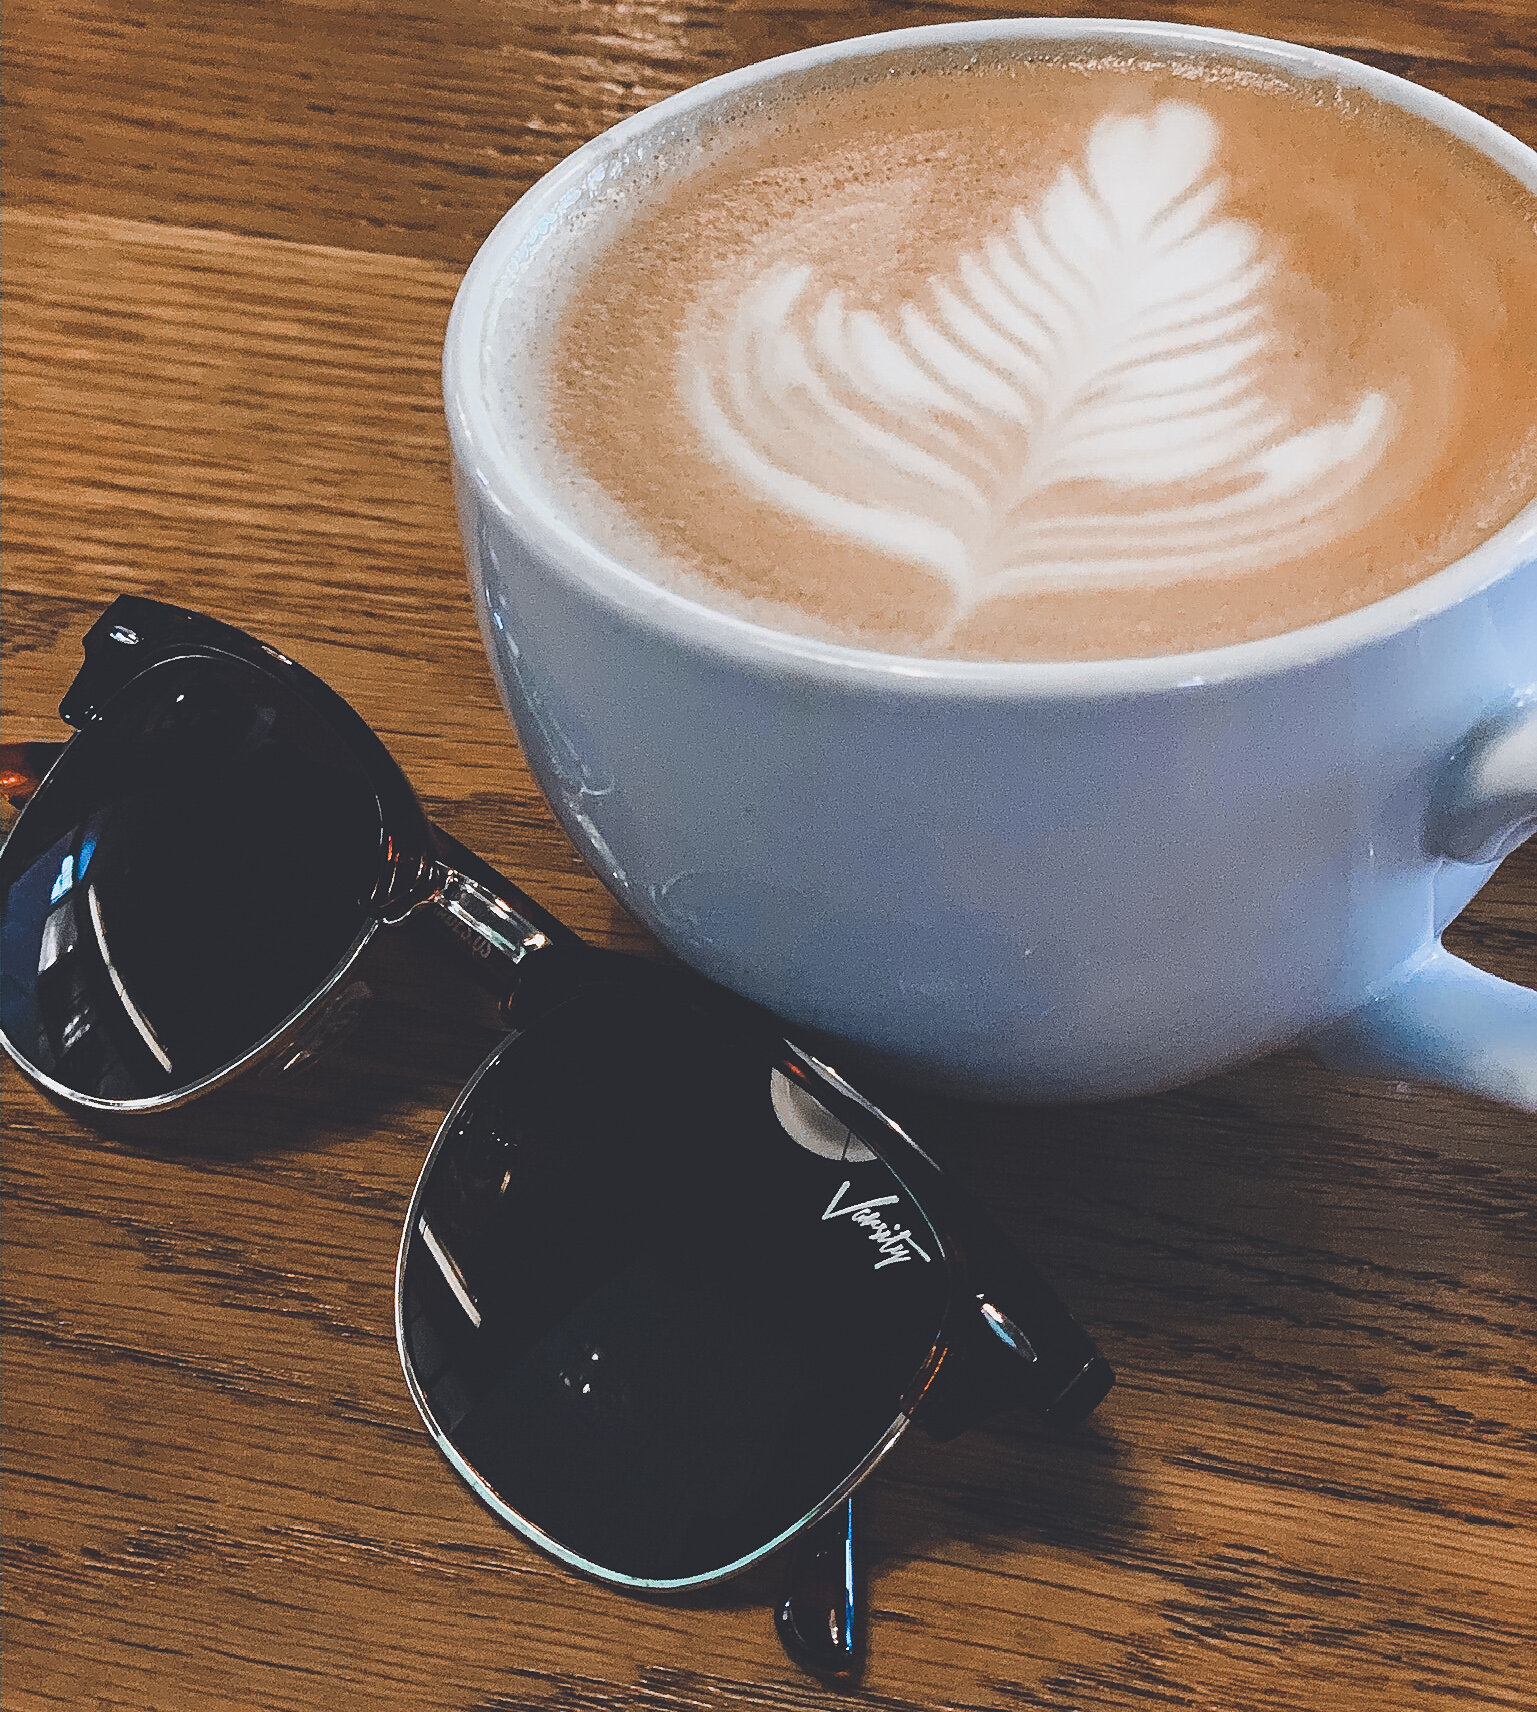 An early morning and quick turn around home calls for coffee and sunnies.